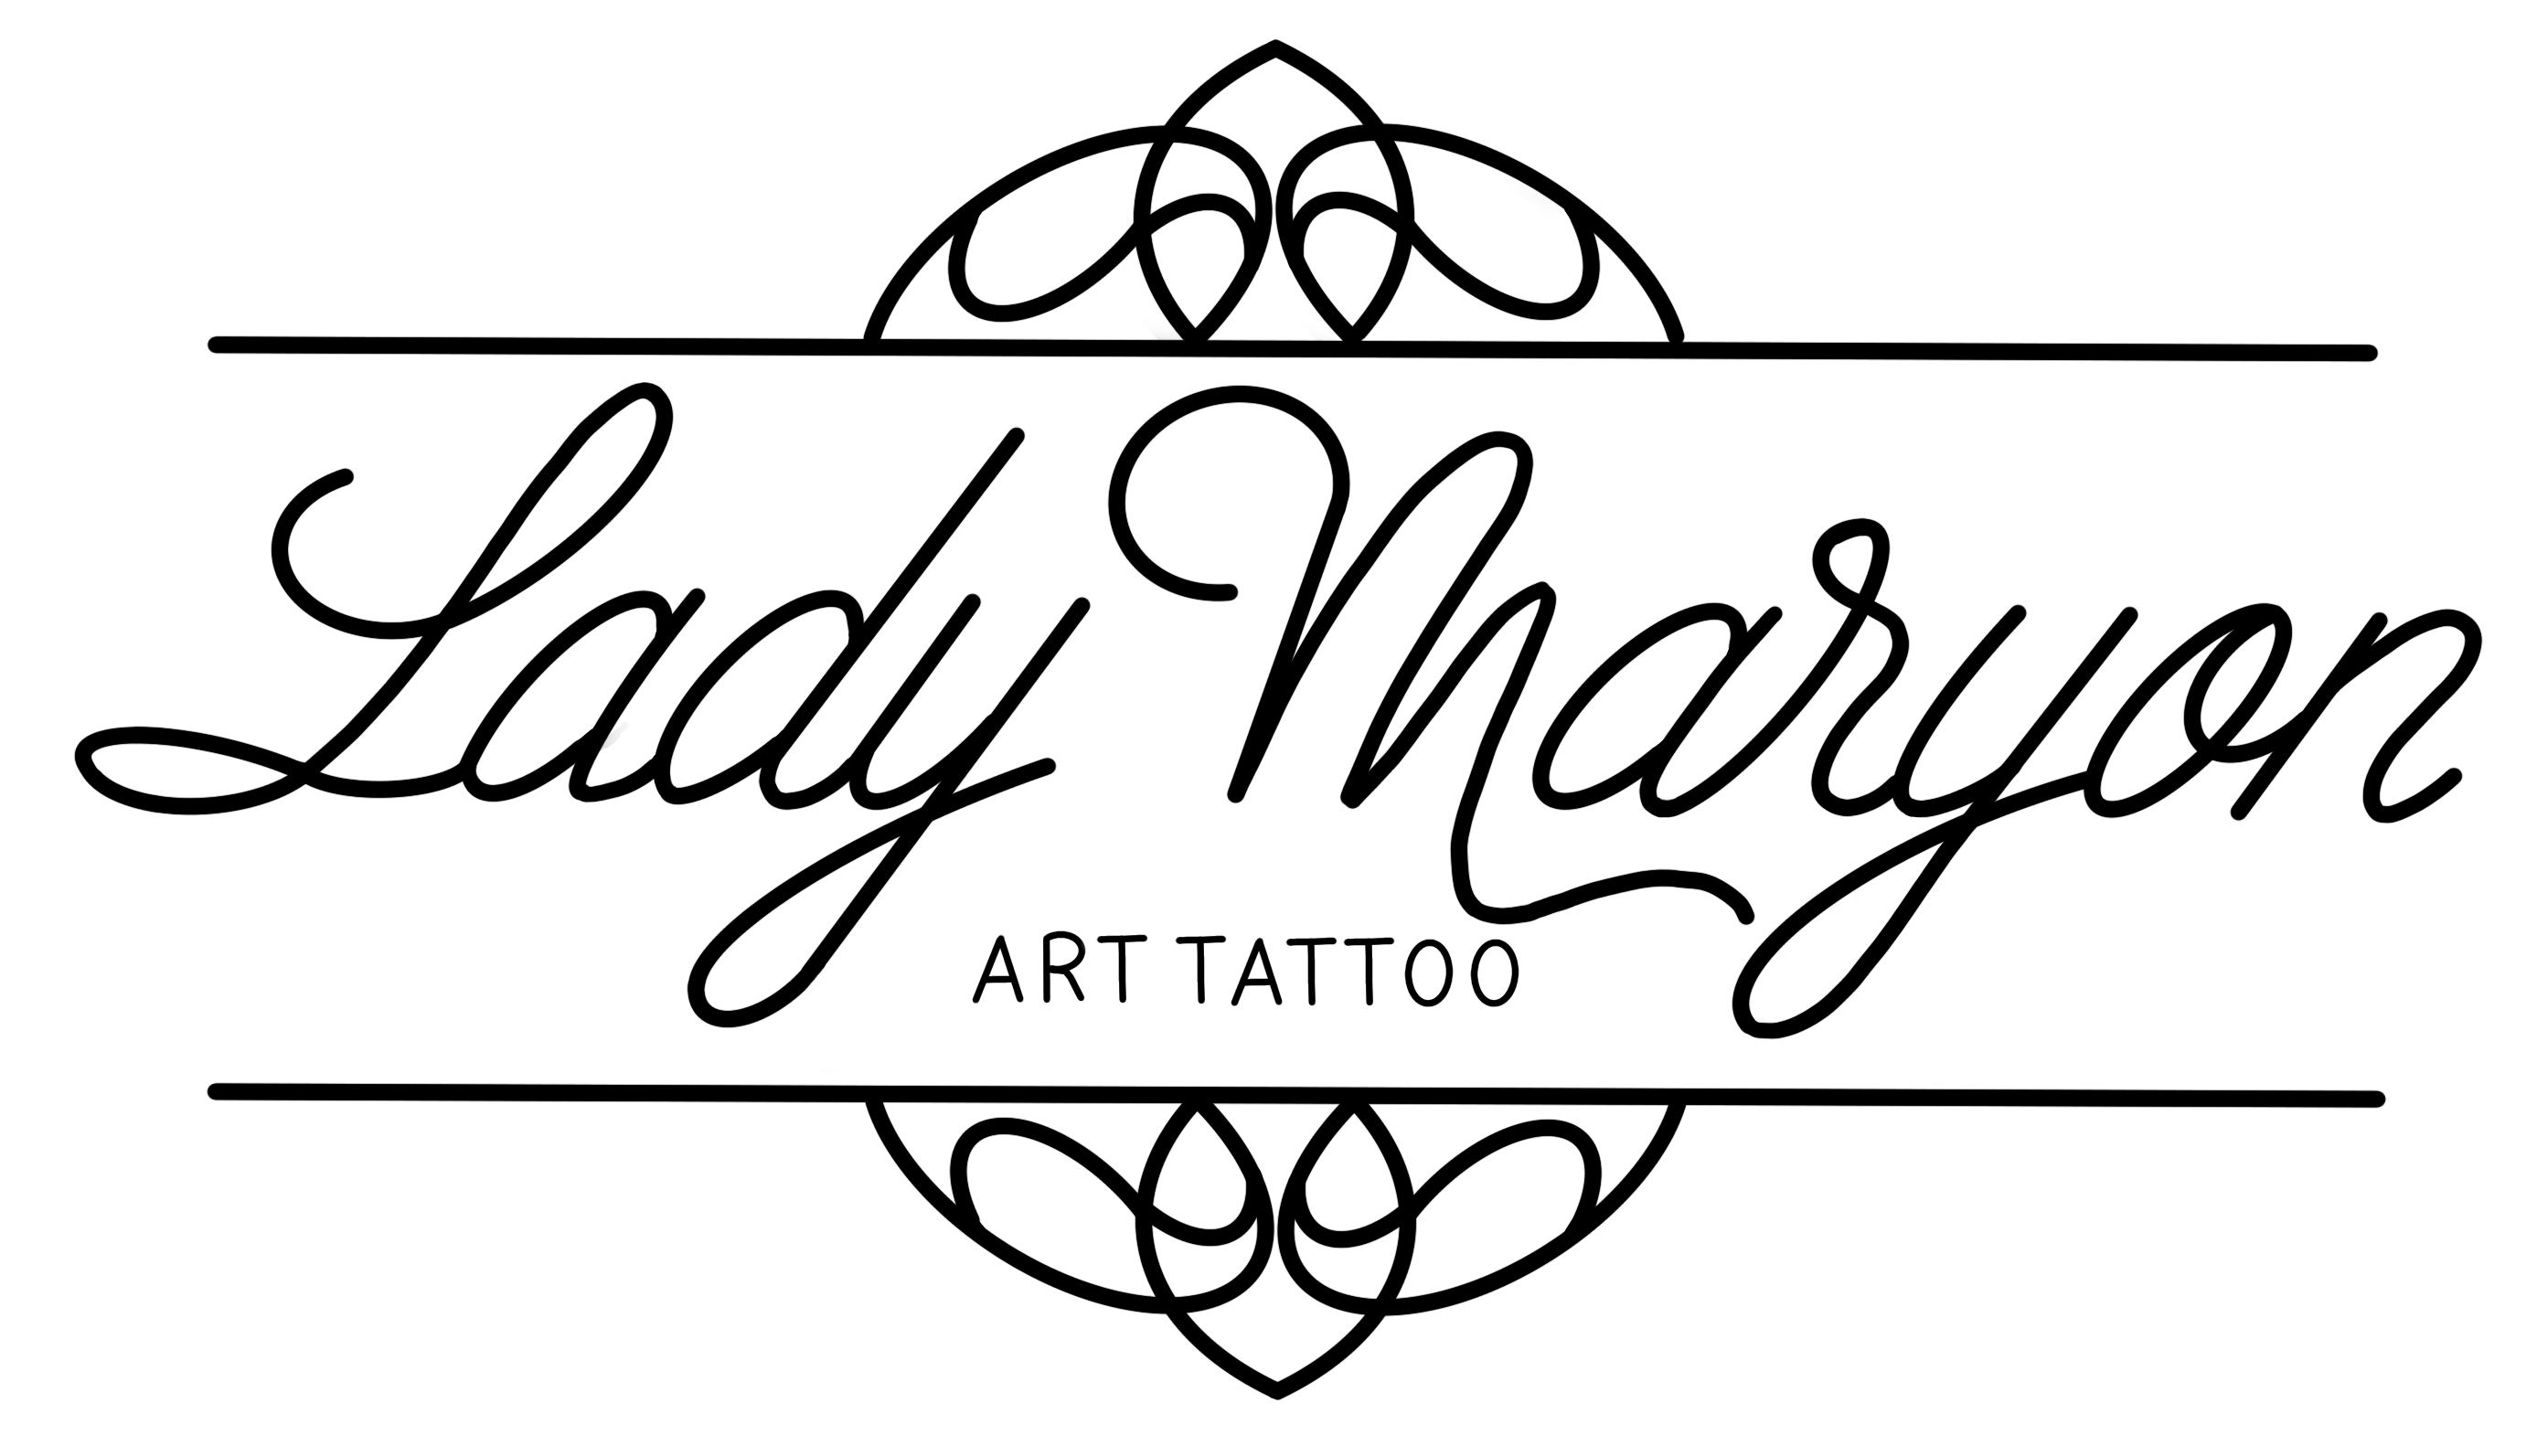 Lady Maryon Art Tattoo